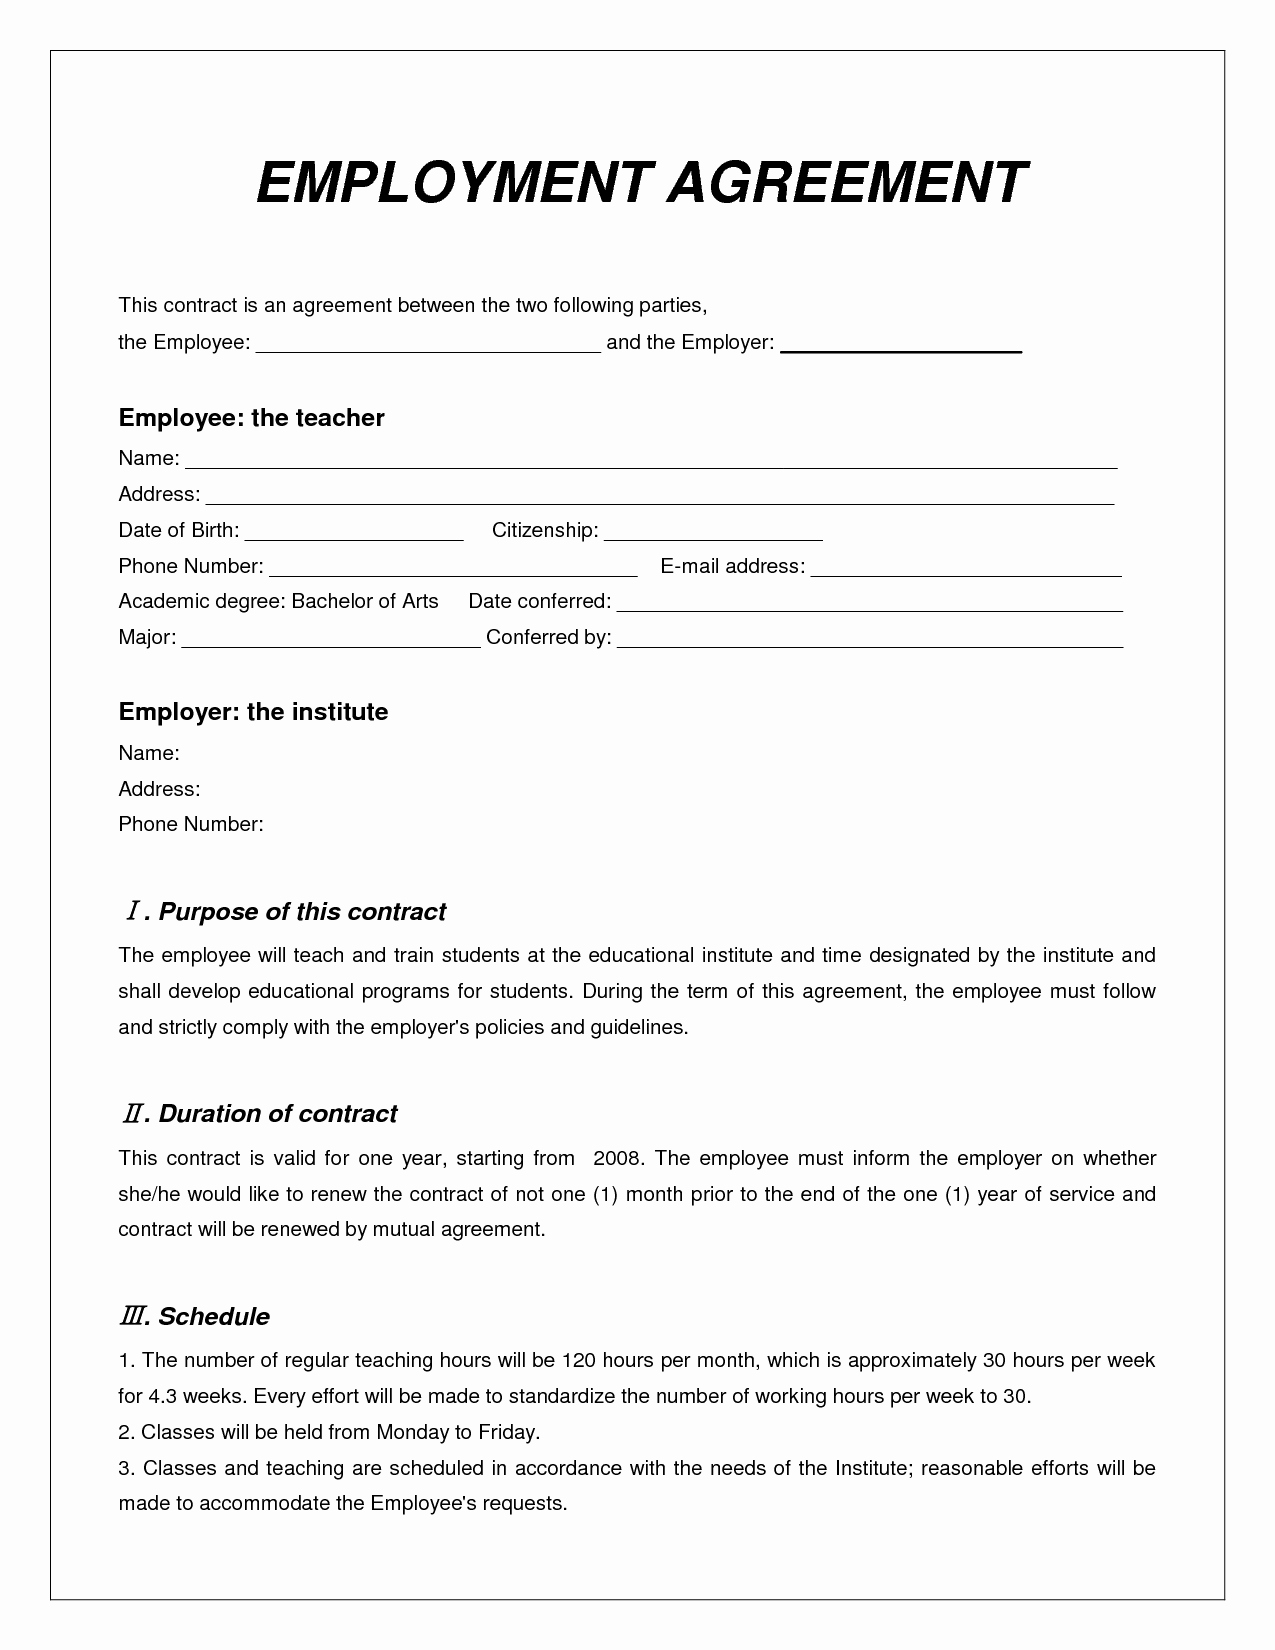 Free Employment Contract Template Word Awesome top 5 Free Employment Agreement Templates Word Templates